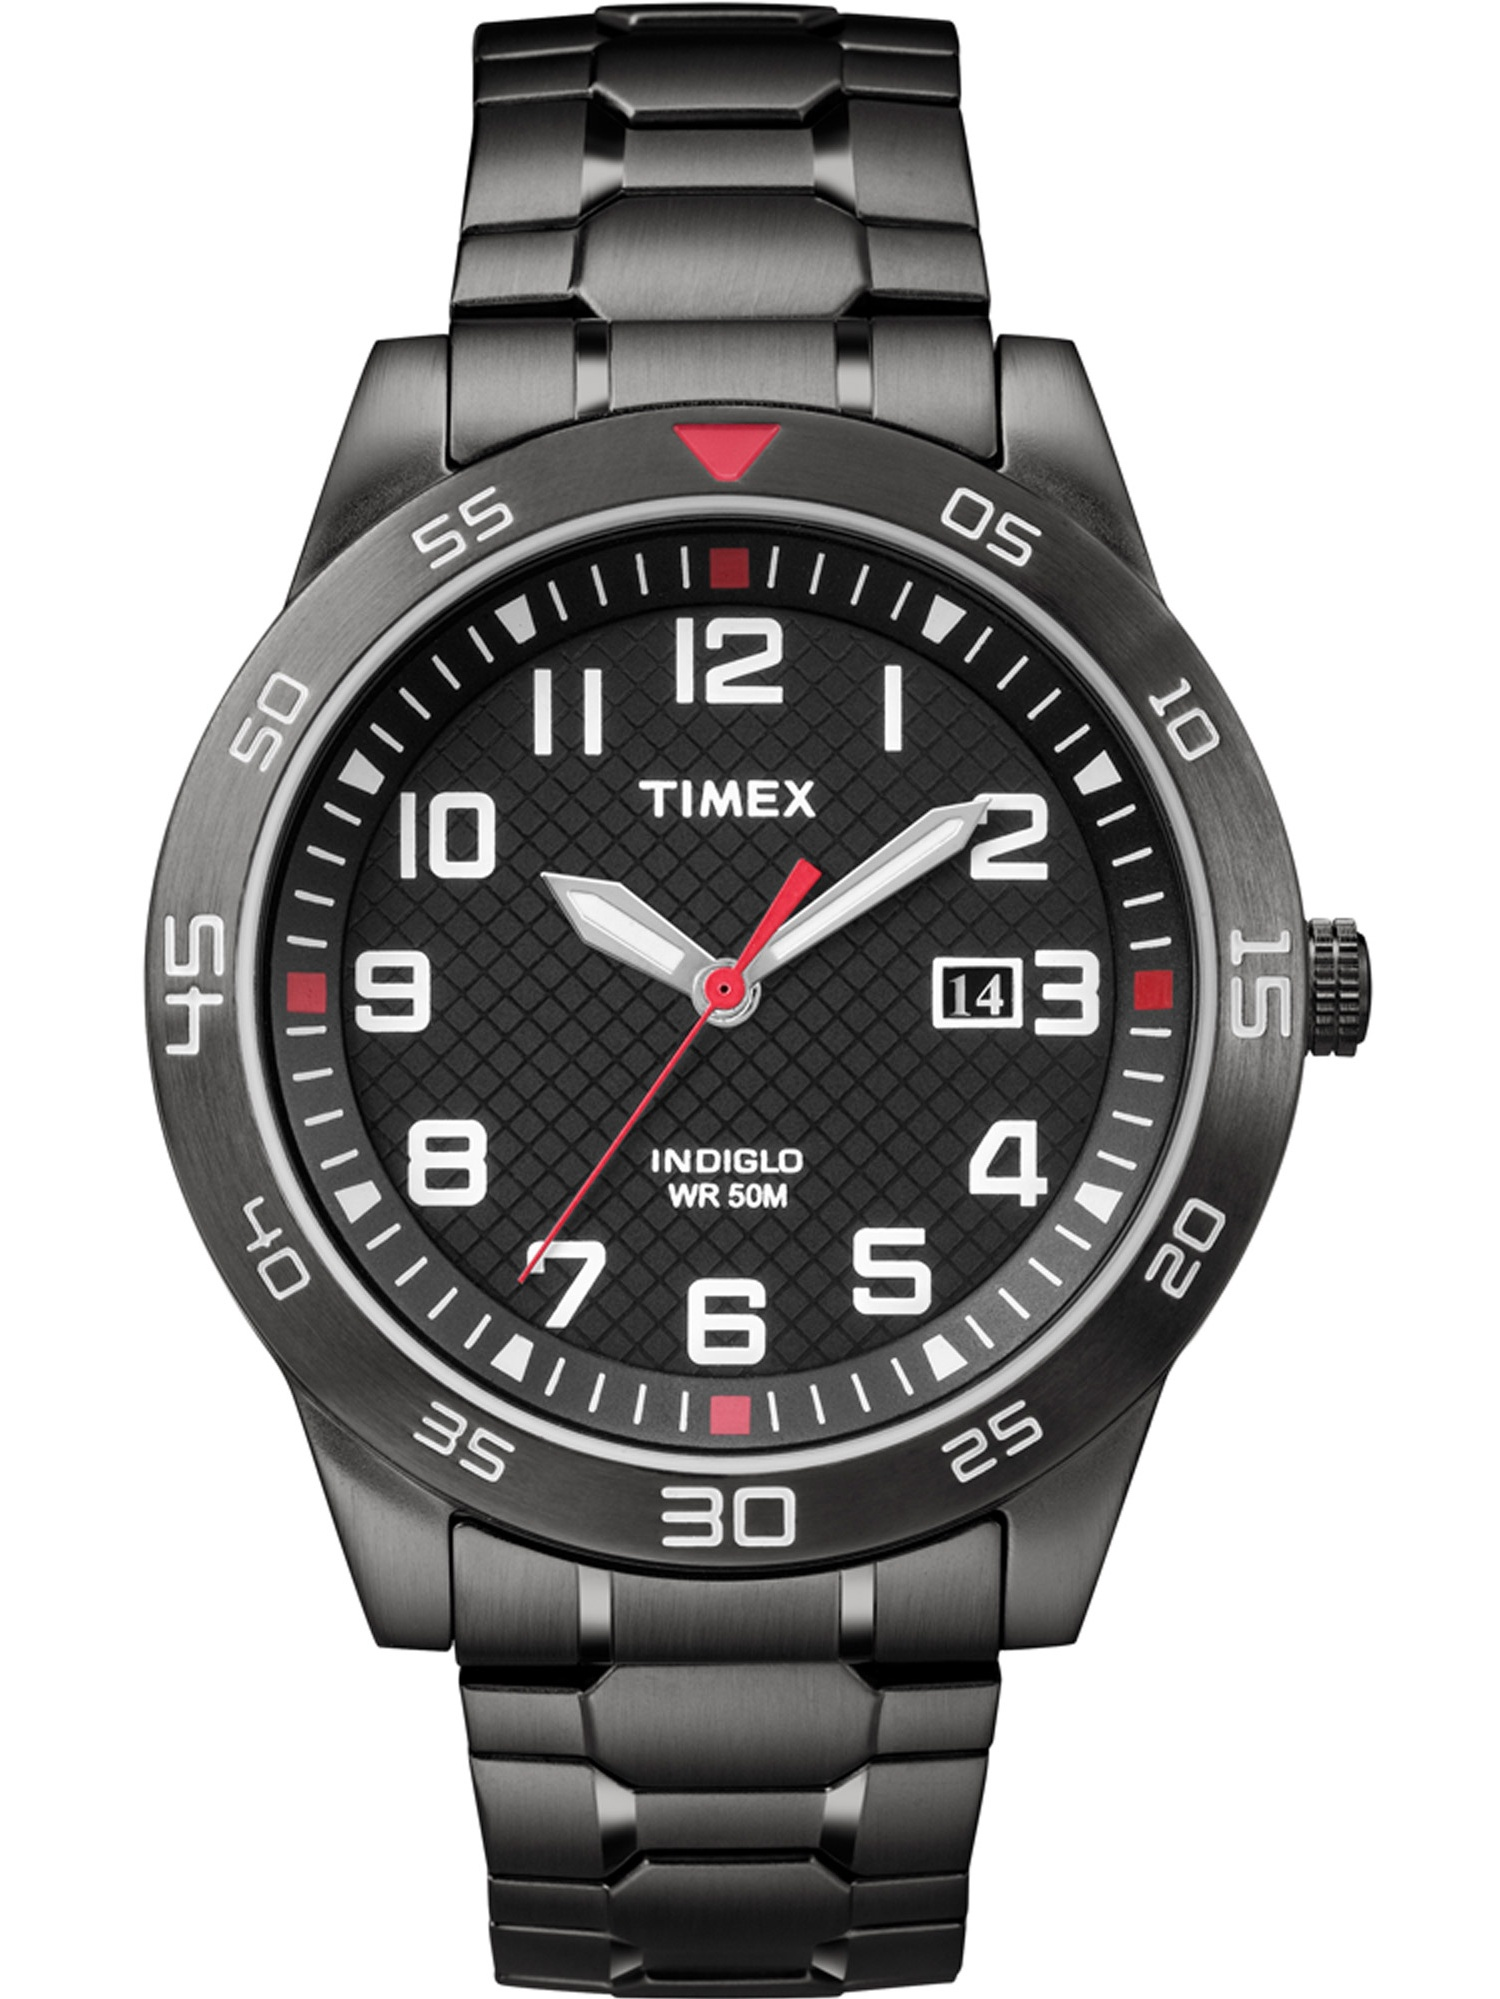 Timex Men's Fieldstone Way Watch, Black Stainless Steel Expansion Band by Timex